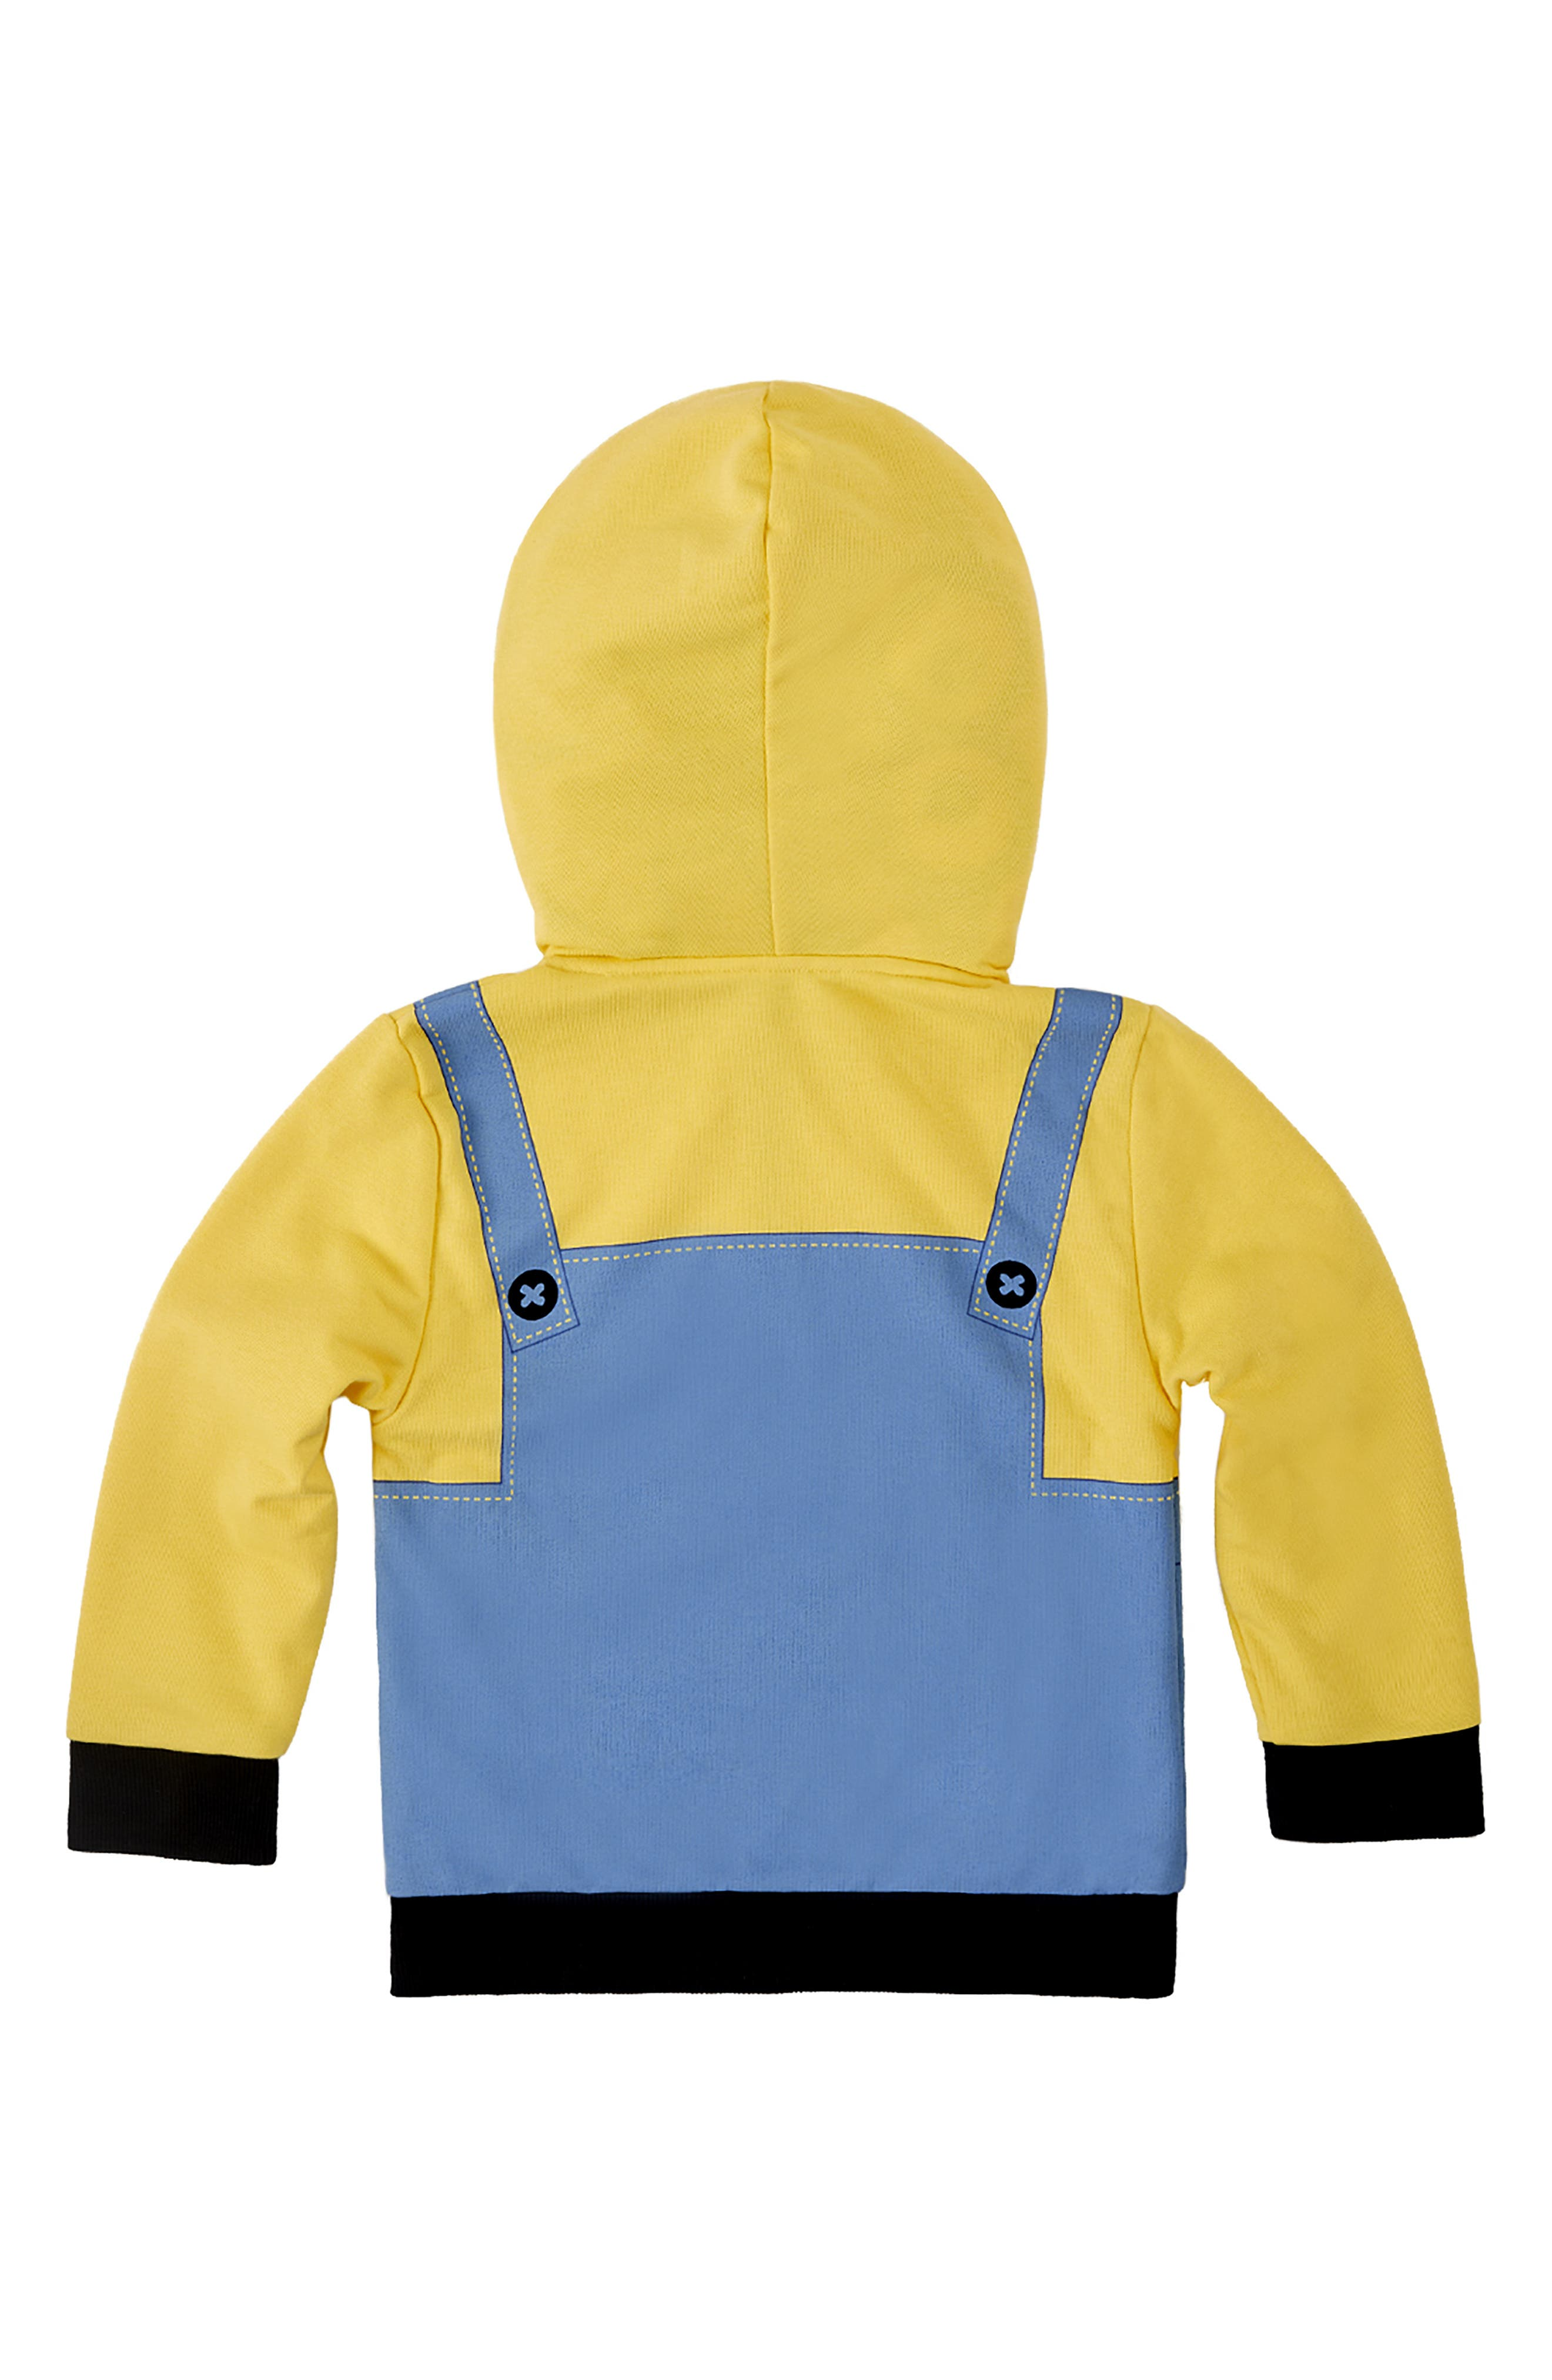 CUBCOATS, Minion Bob<sup>®</sup> 2-in-1 Stuffed Animal Hoodie, Alternate thumbnail 4, color, YELLOW / BLUE MIX